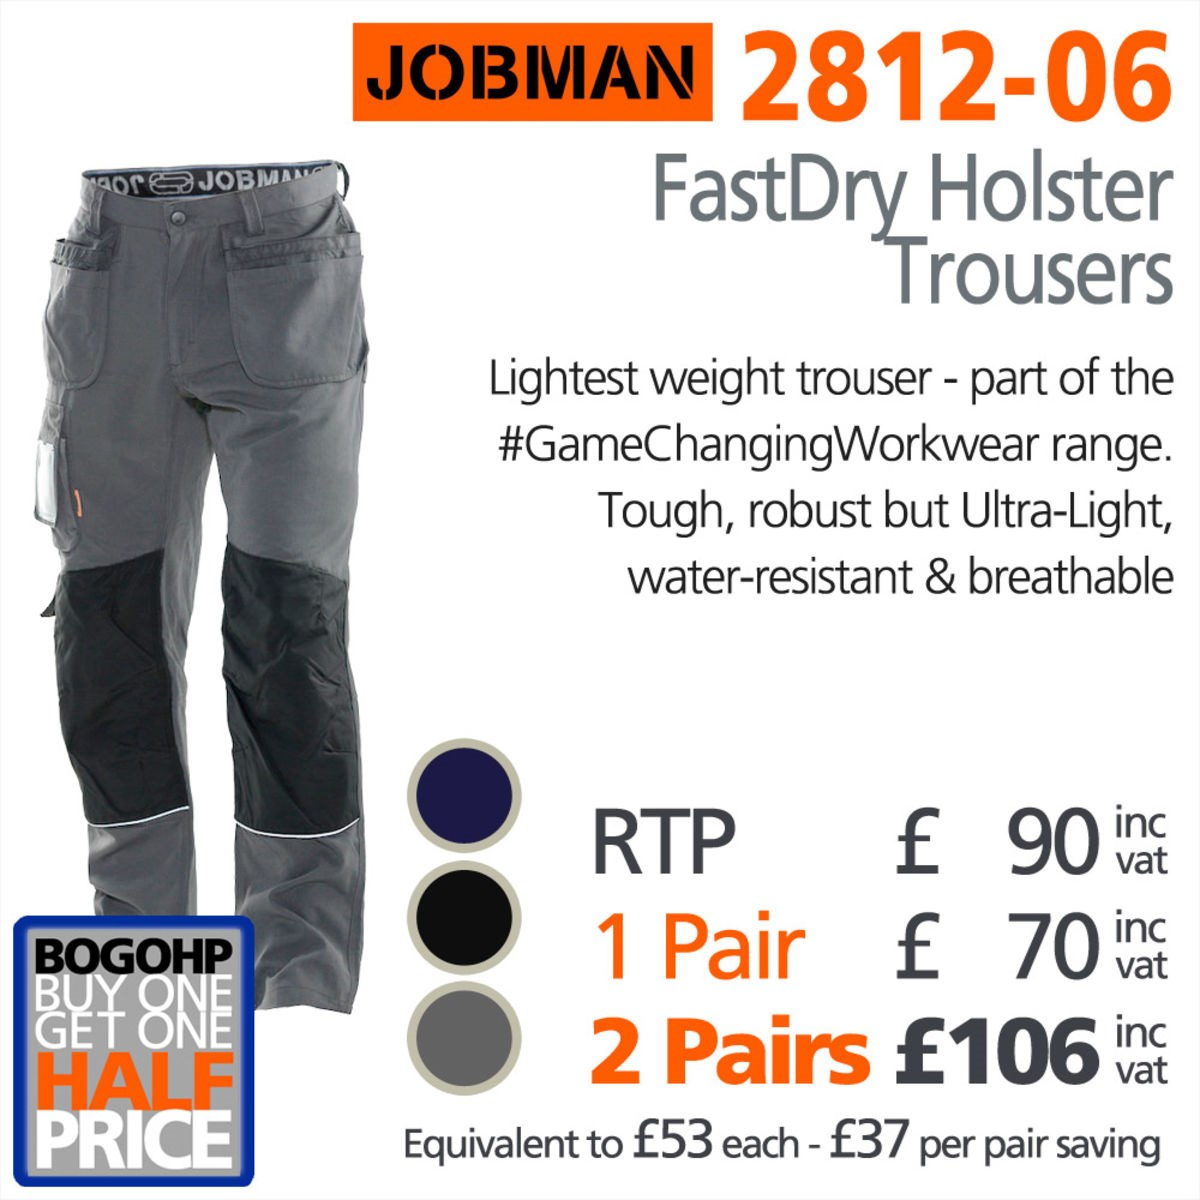 2812-06 FASTDRY HOLSTER TROUSERS